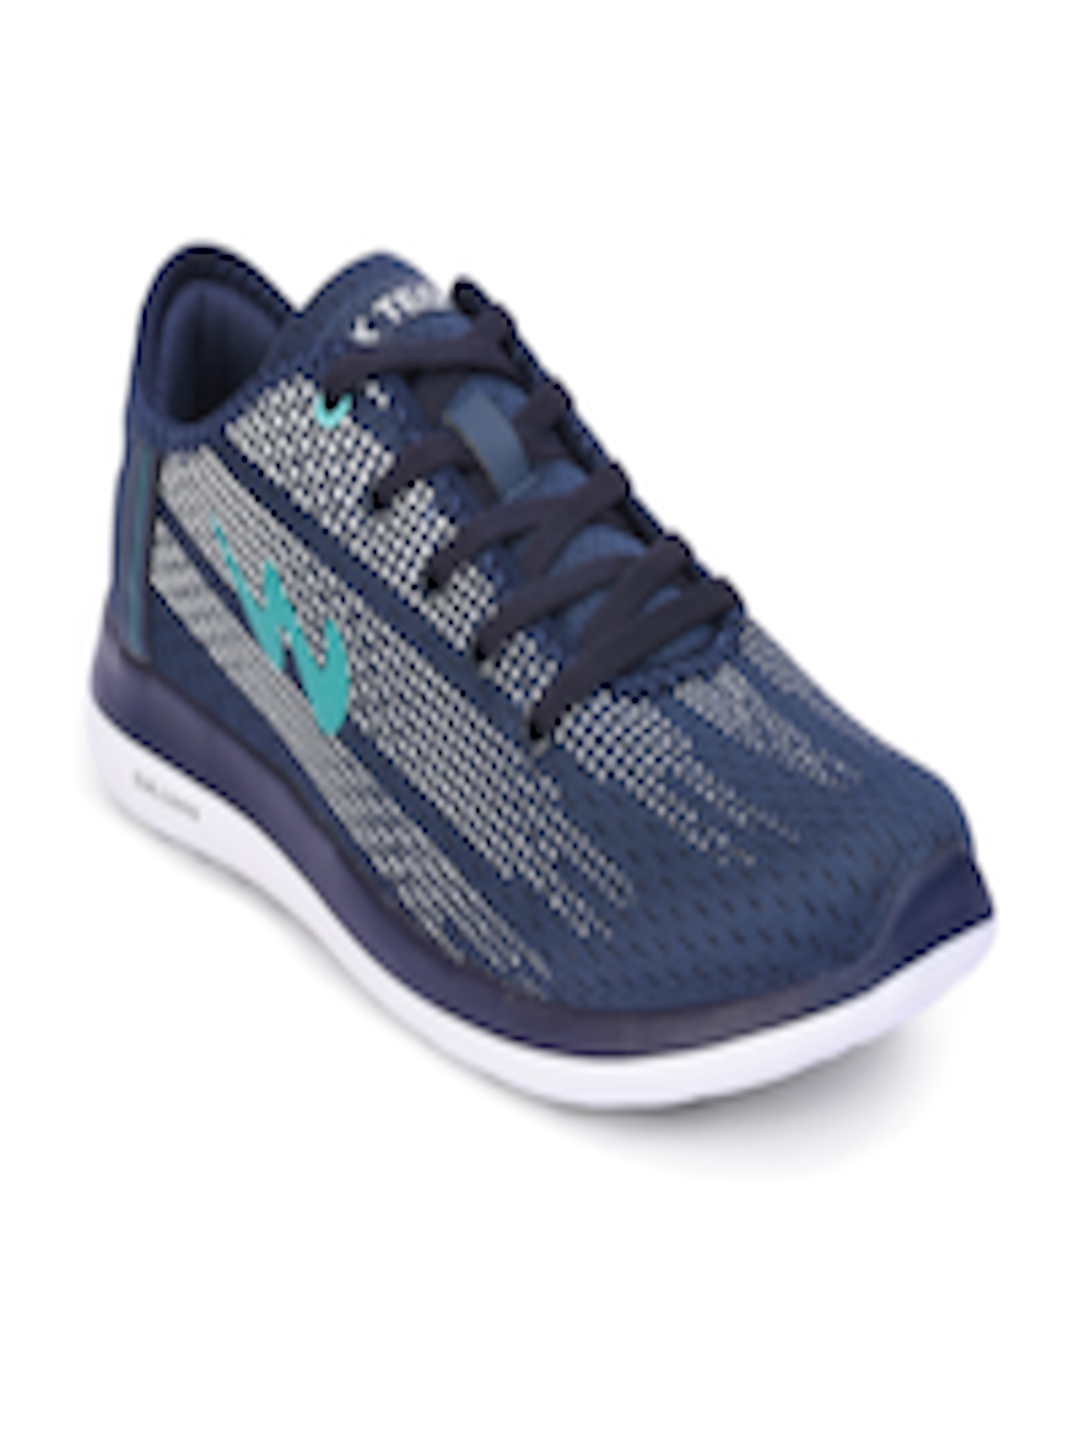 218422b4884e Buy Campus Men Battle X 10 Navy Blue Running Shoes - Sports Shoes for Men  2257339